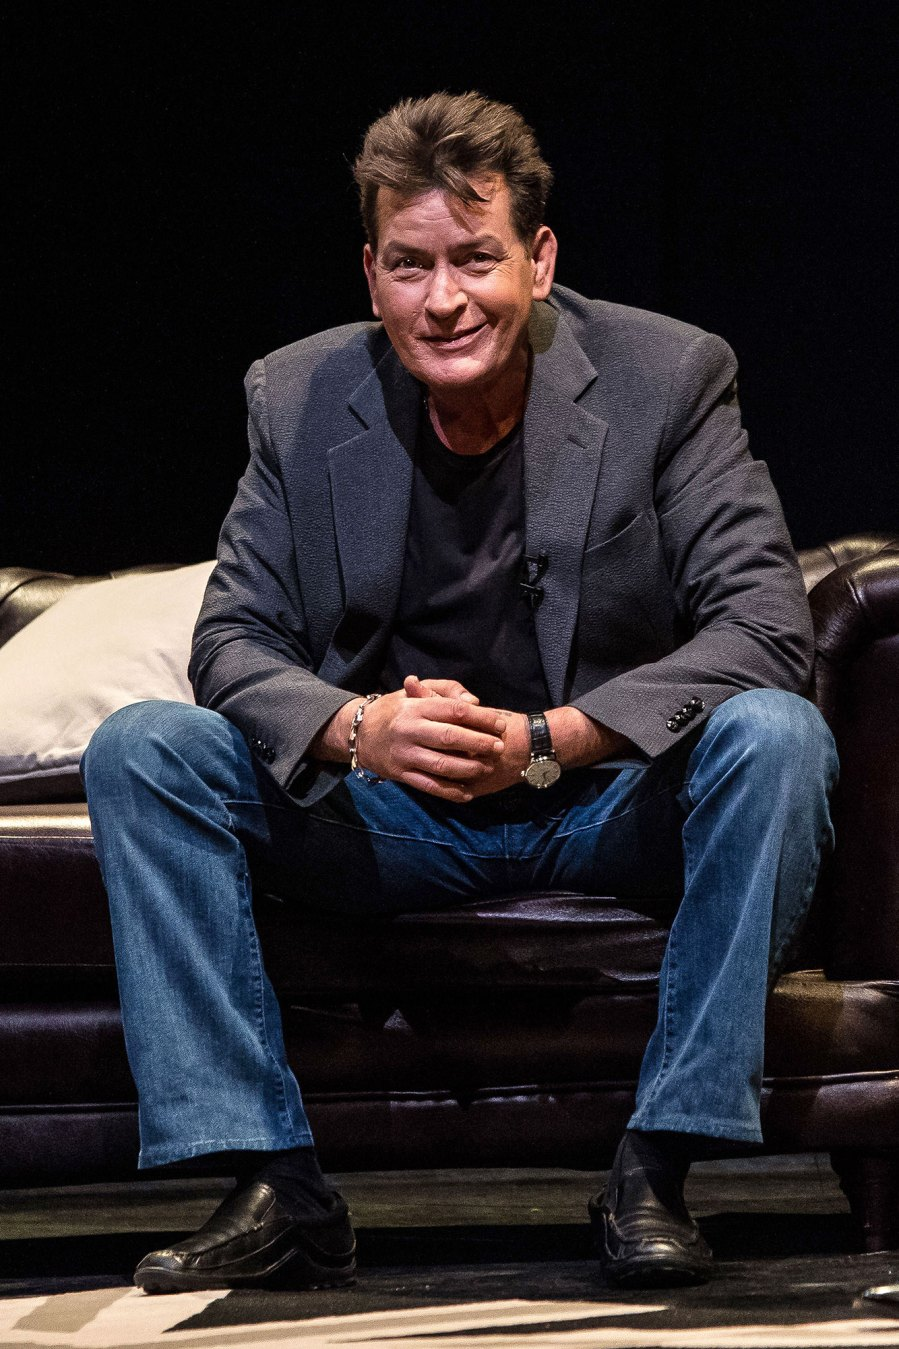 Charlie Sheen Gallery